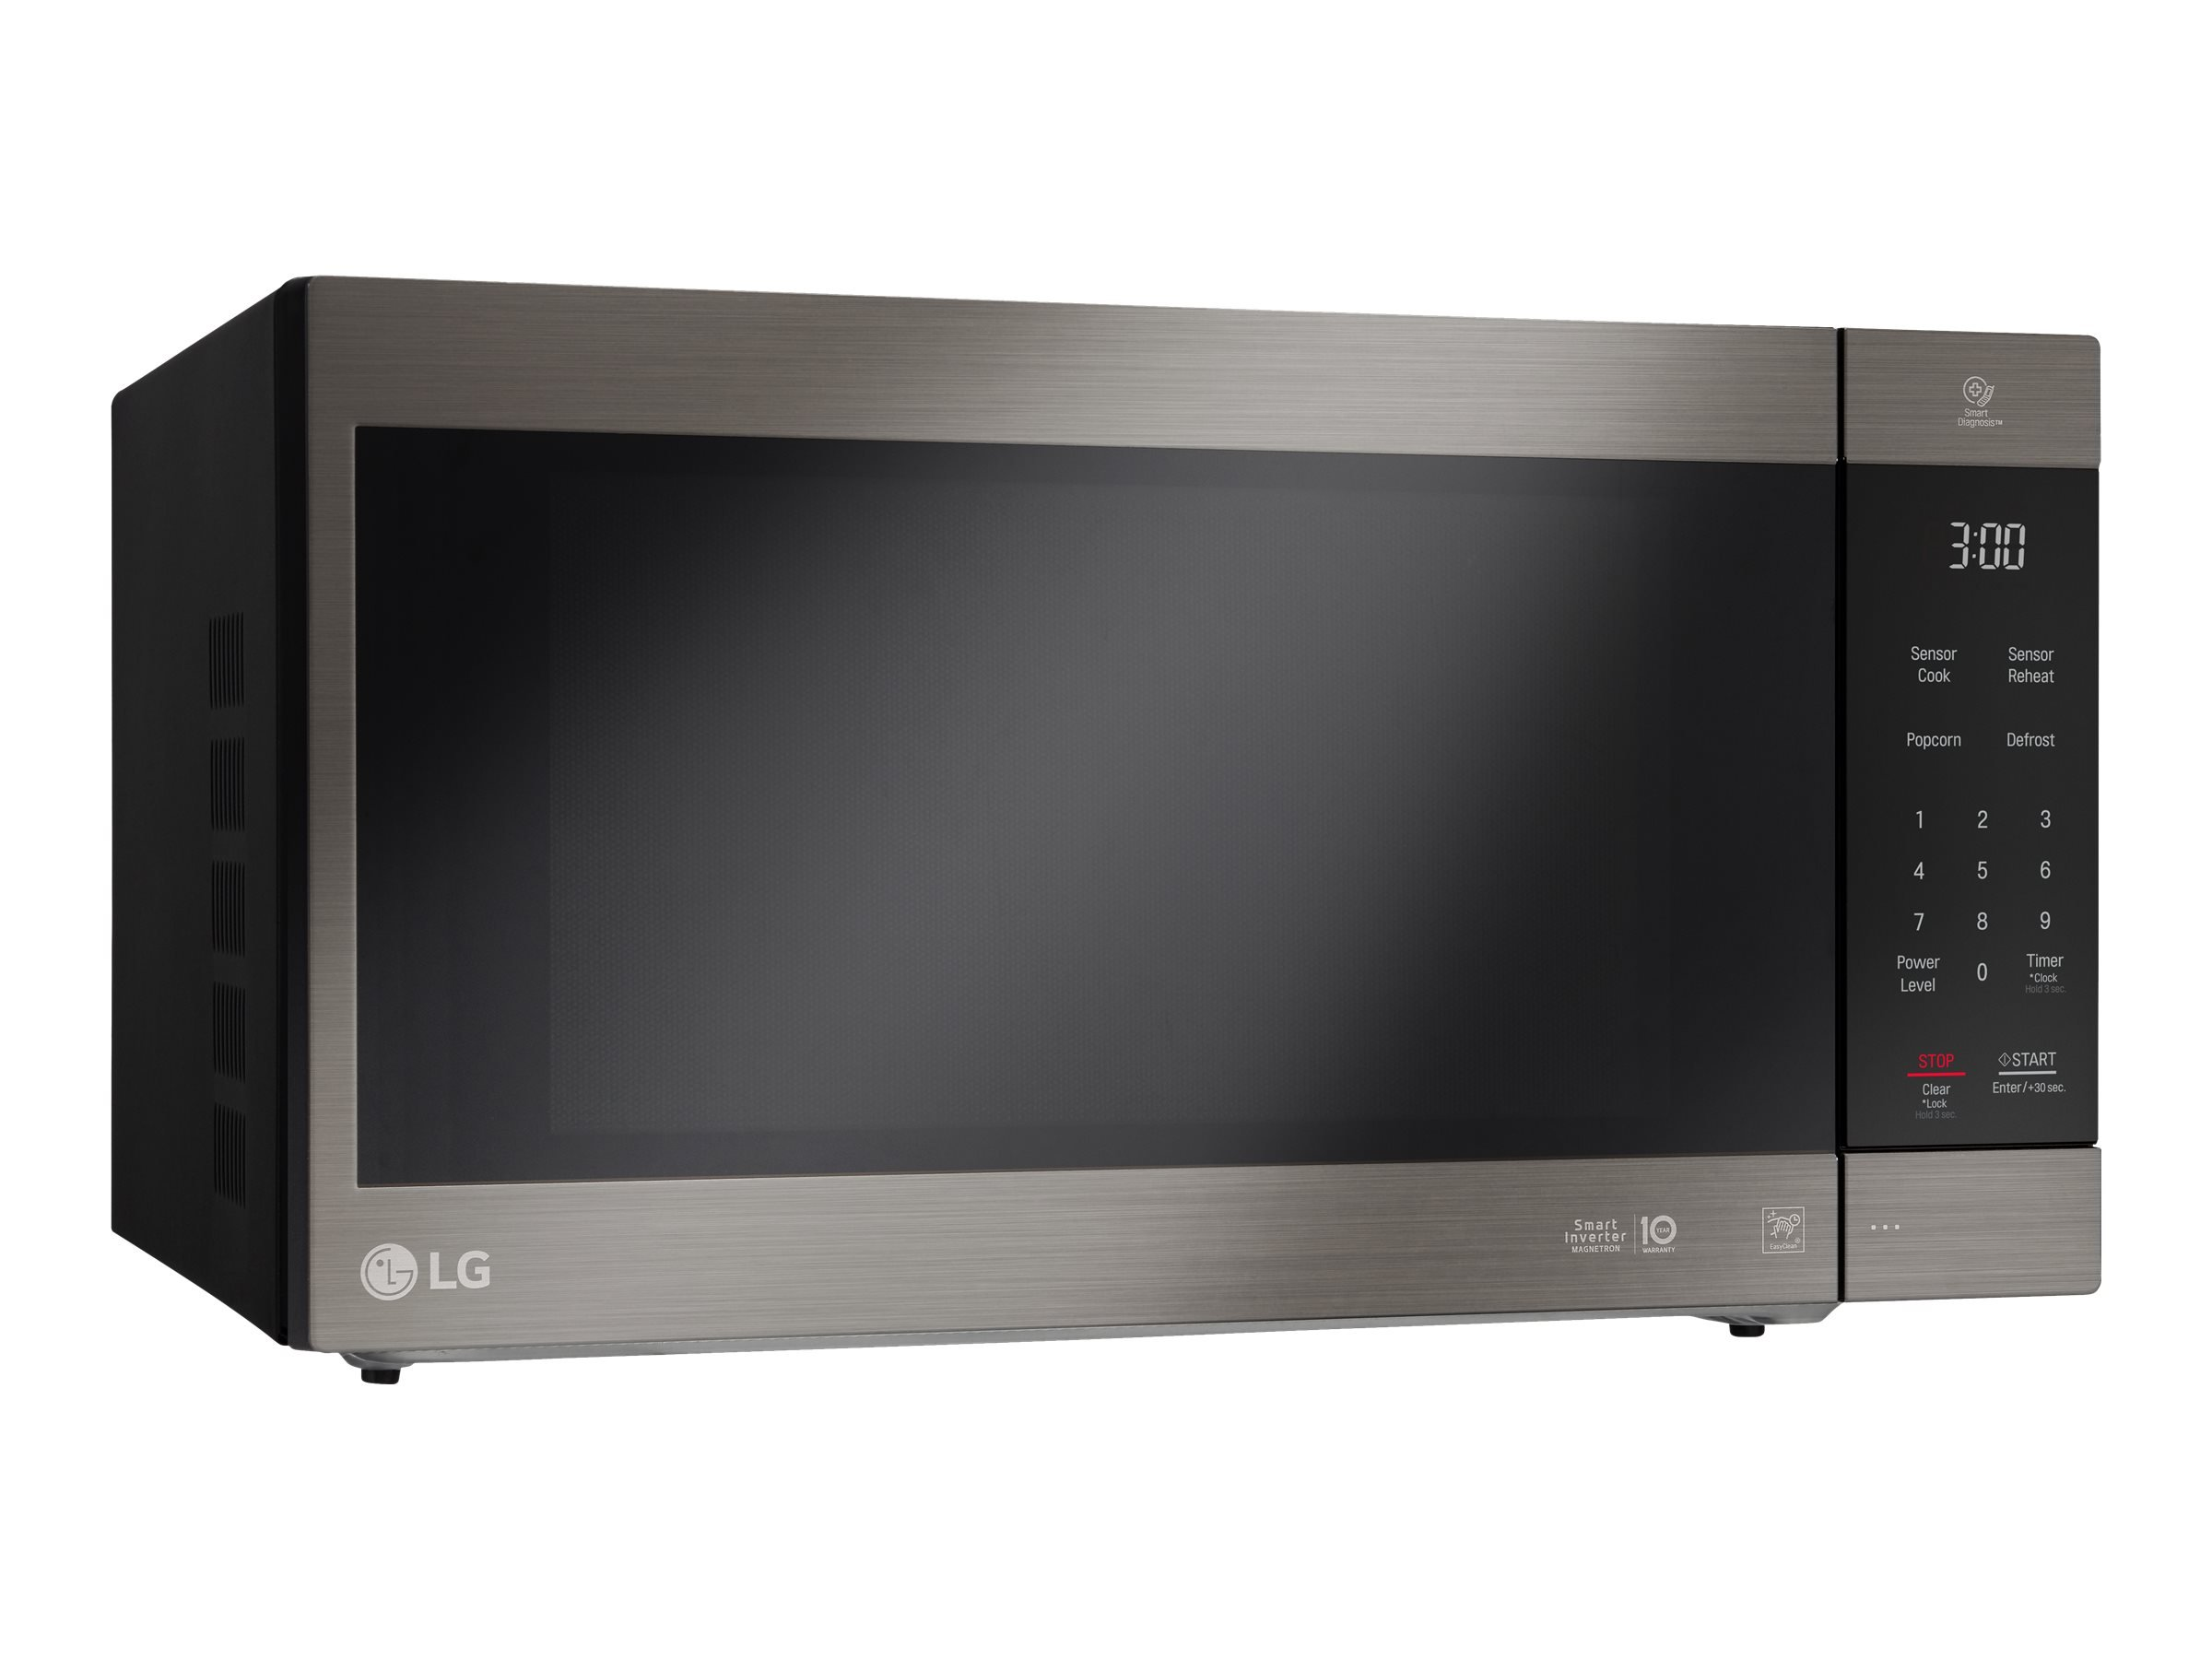 LG Countertop Microwave LMC2075BD Stainless